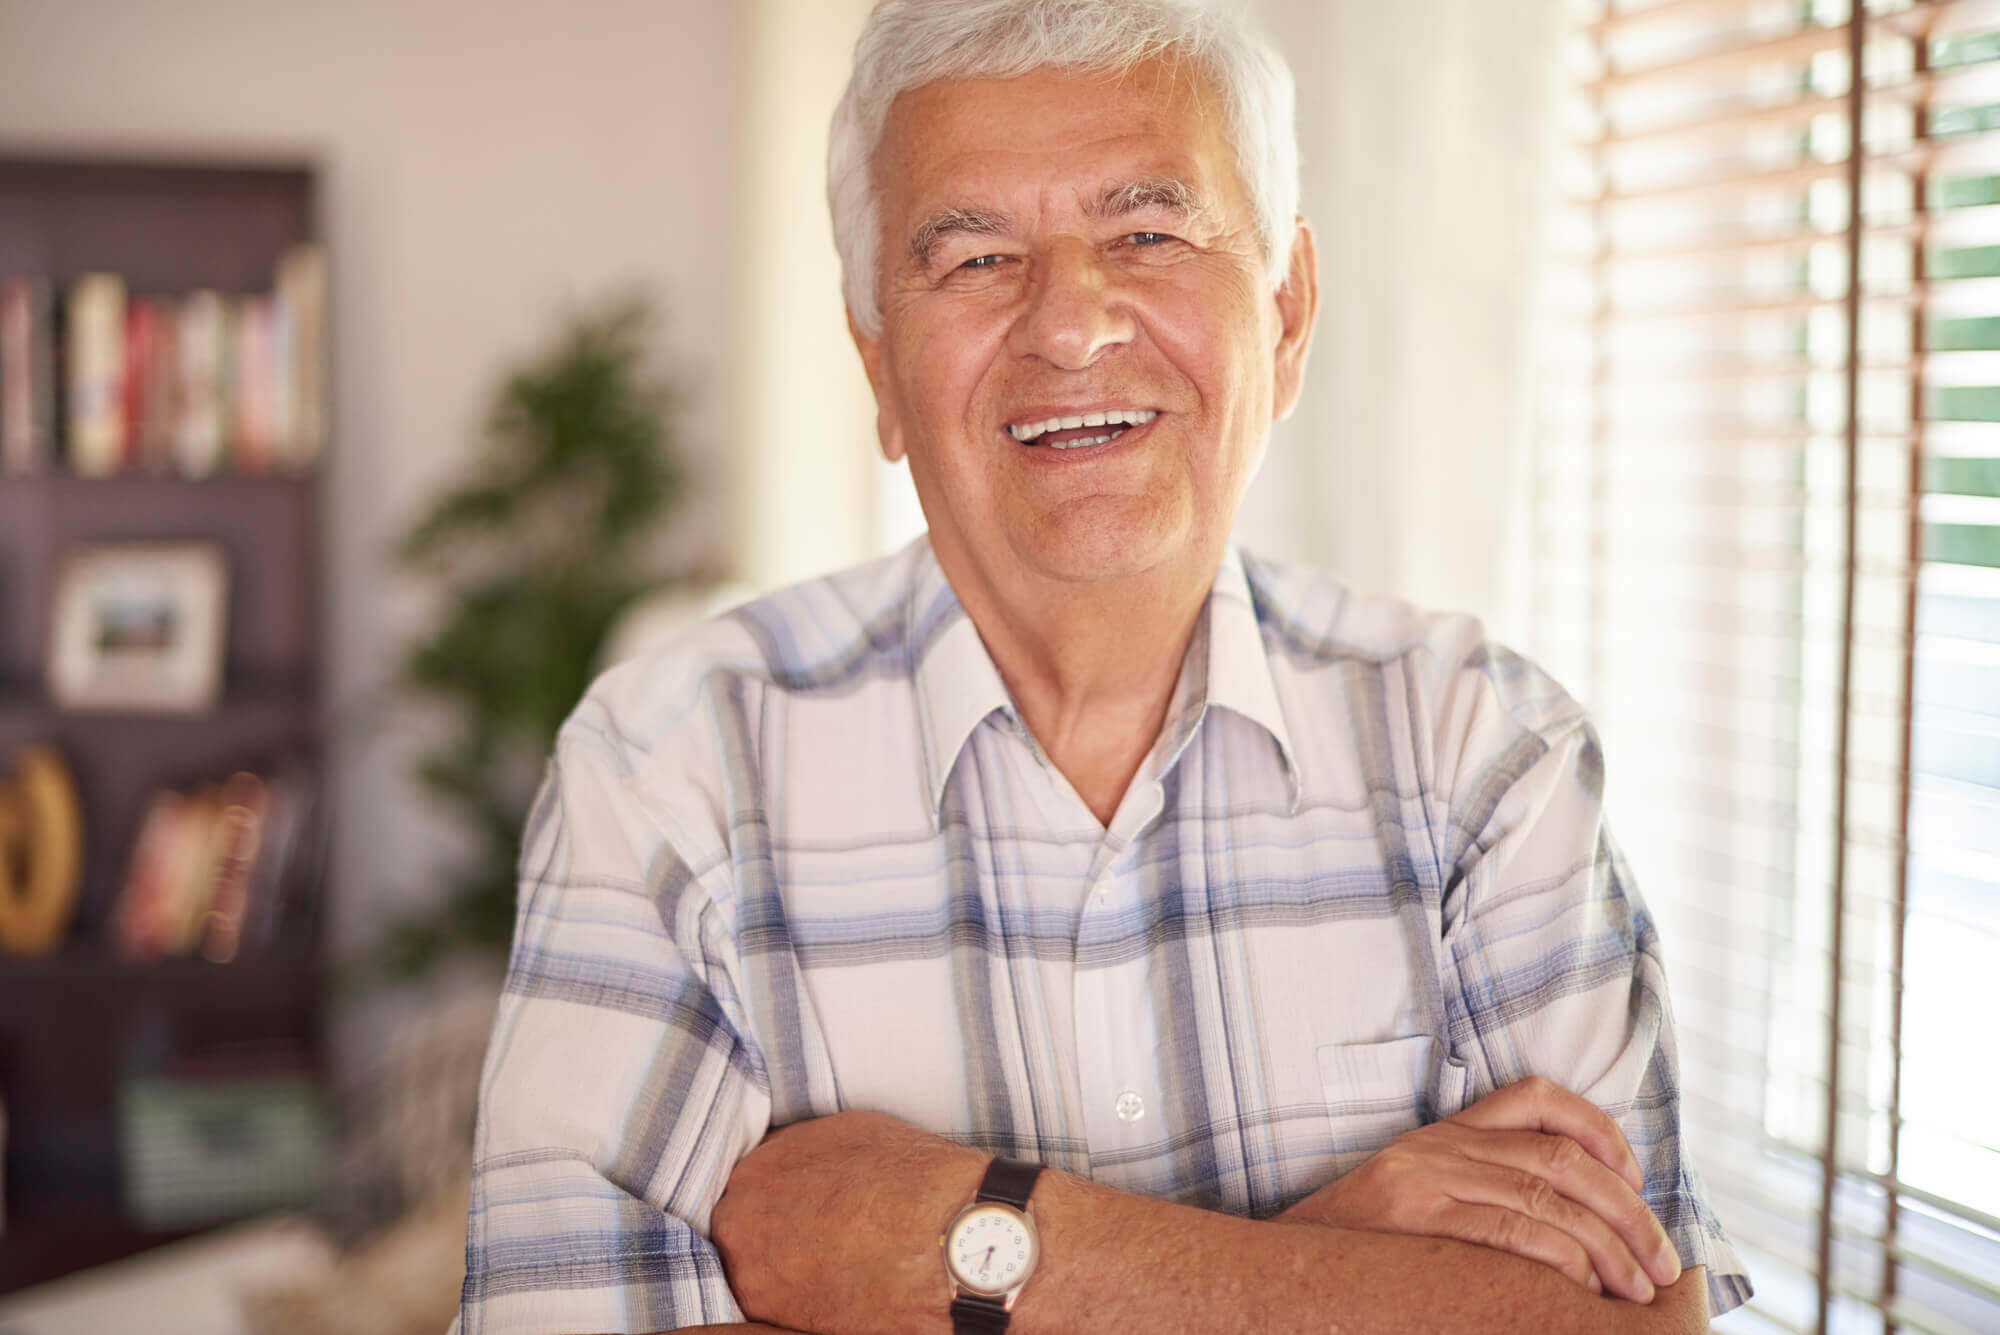 where to get best dentures in north miami?